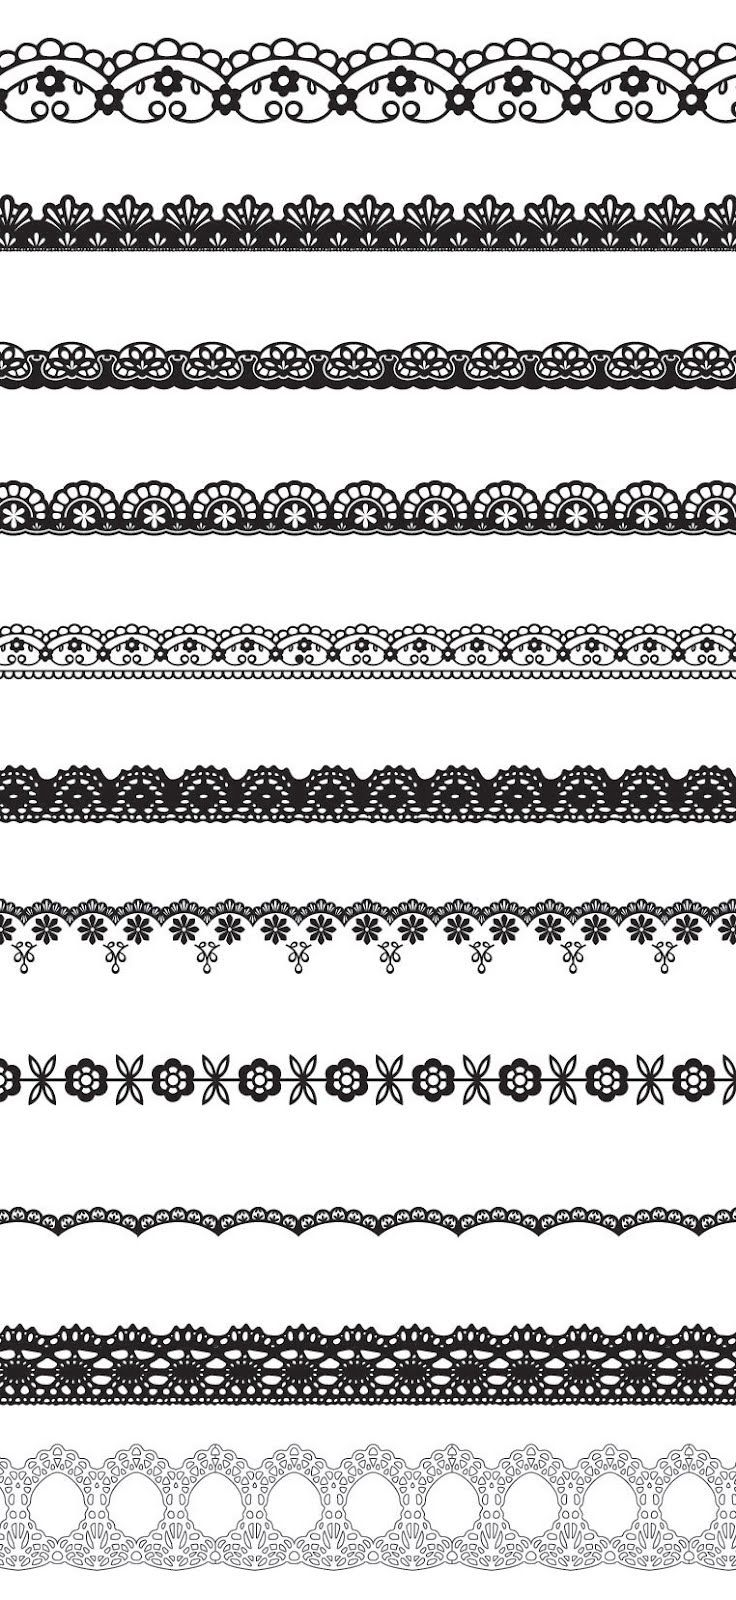 Bracelet svg #8, Download drawings